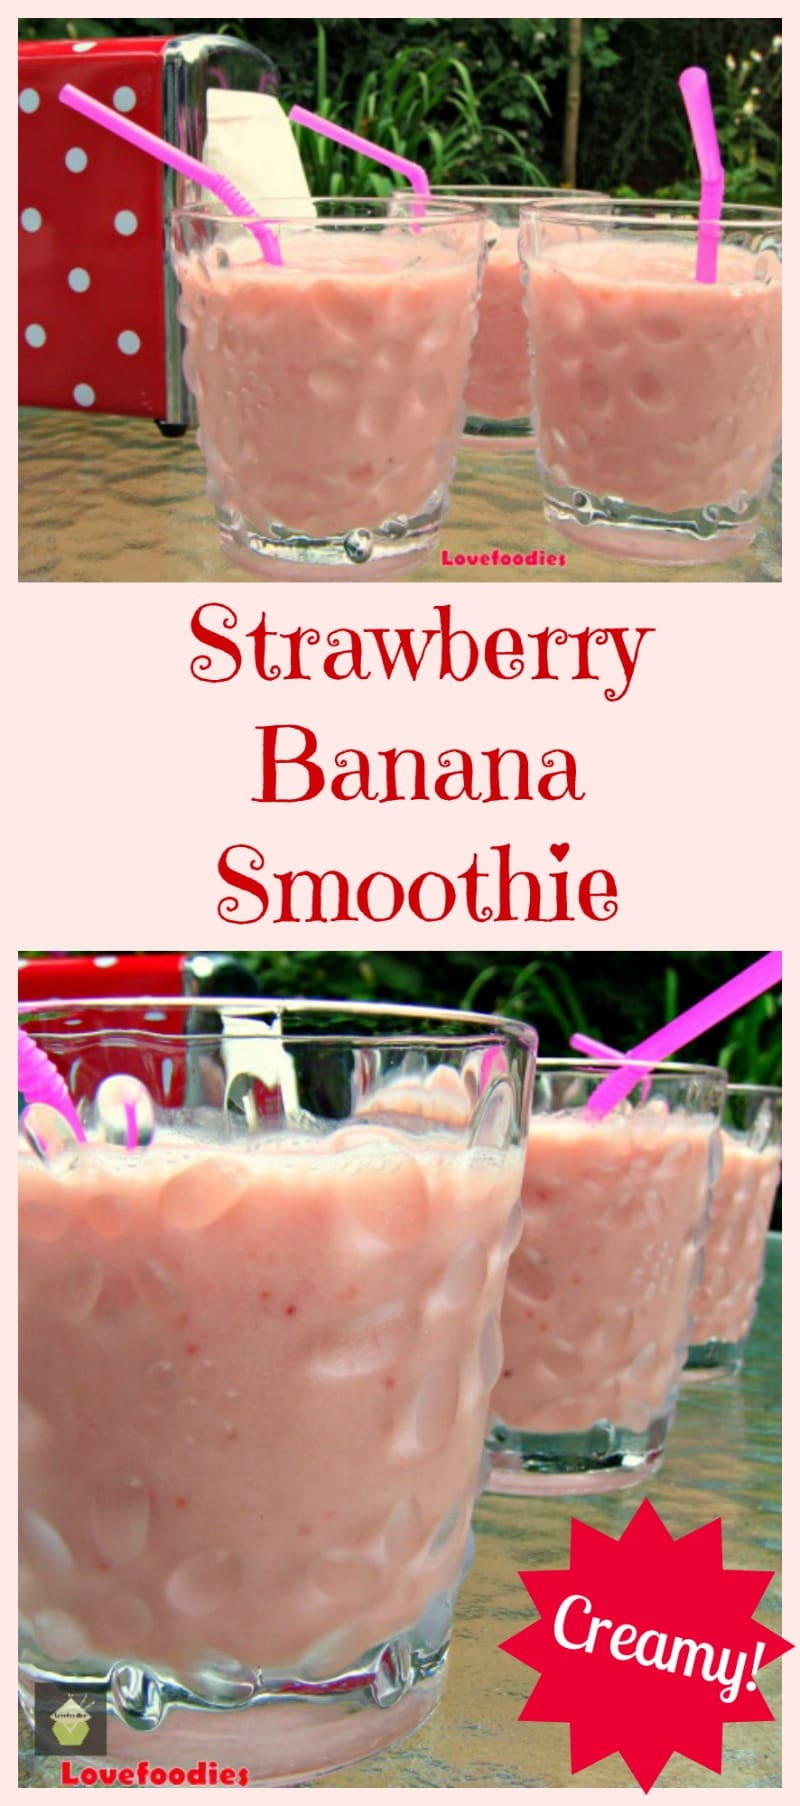 Easy Creamy Strawberry Banana Smoothie. Tastes just like milkshake but without the cream or ice cream! Delicious!